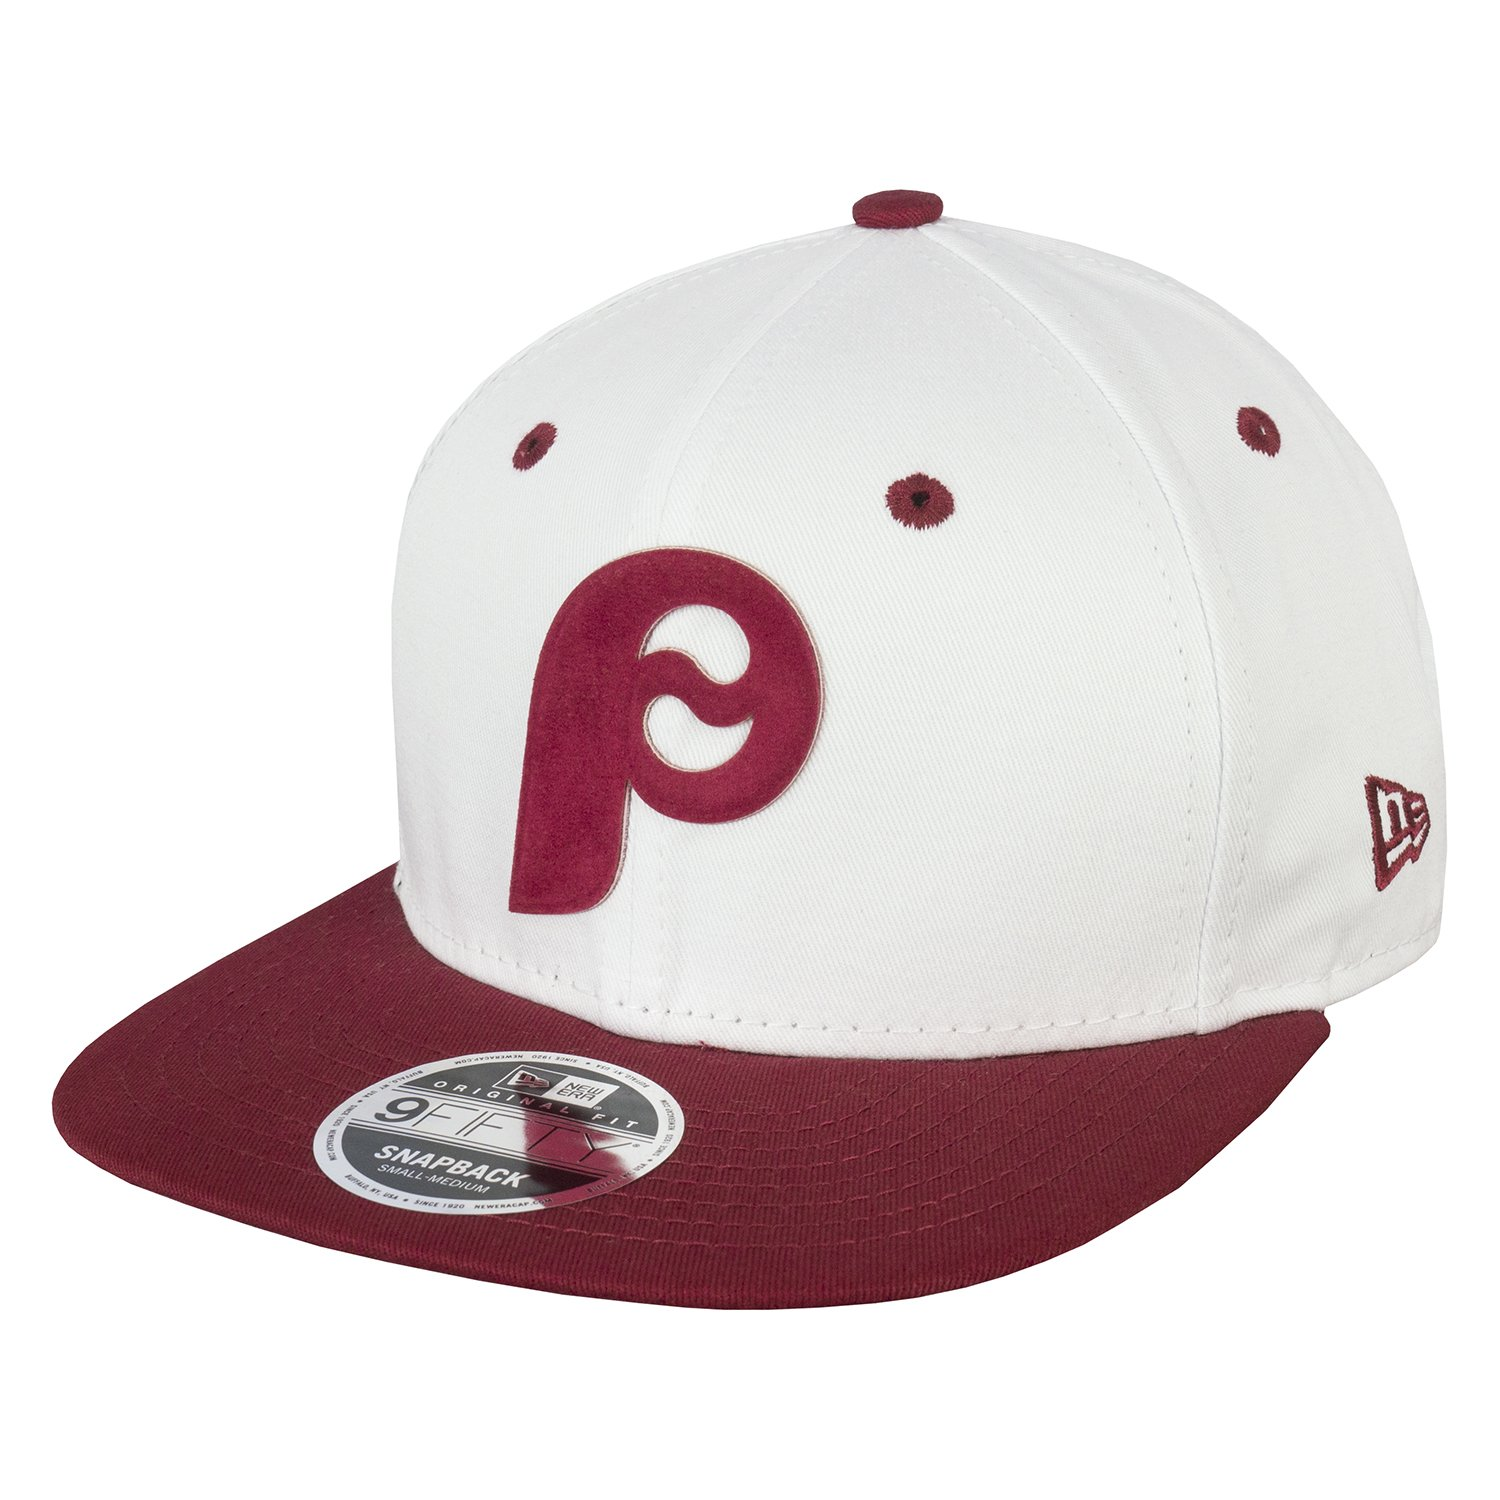 88e41fdca0e New Era 9FIFTY MLB Flock Logo Philadelphia Phillies Snapback Cap   Amazon.co.uk  Clothing